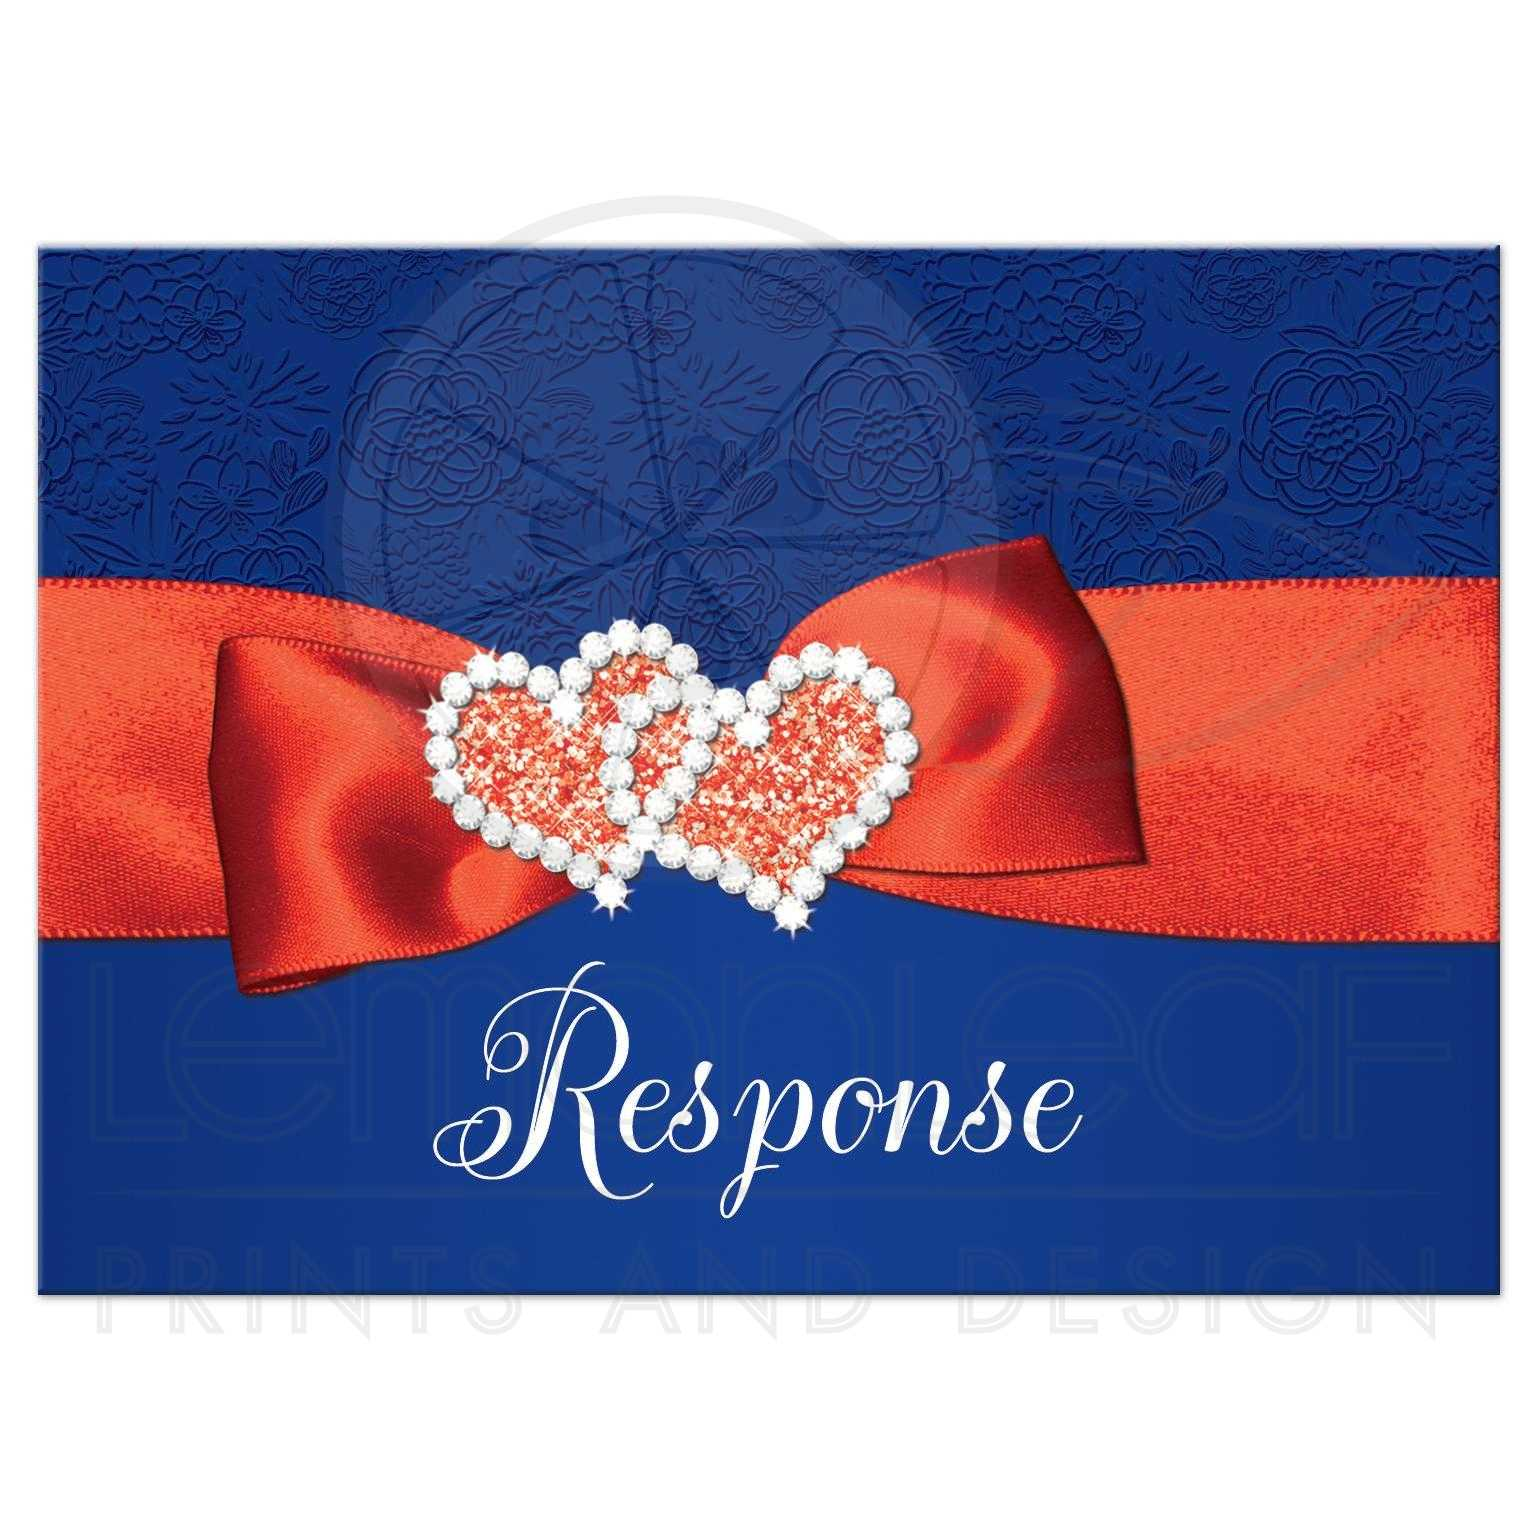 Wedding RSVP Card 2 | Royal Blue, Orange, White Floral | Joined ...